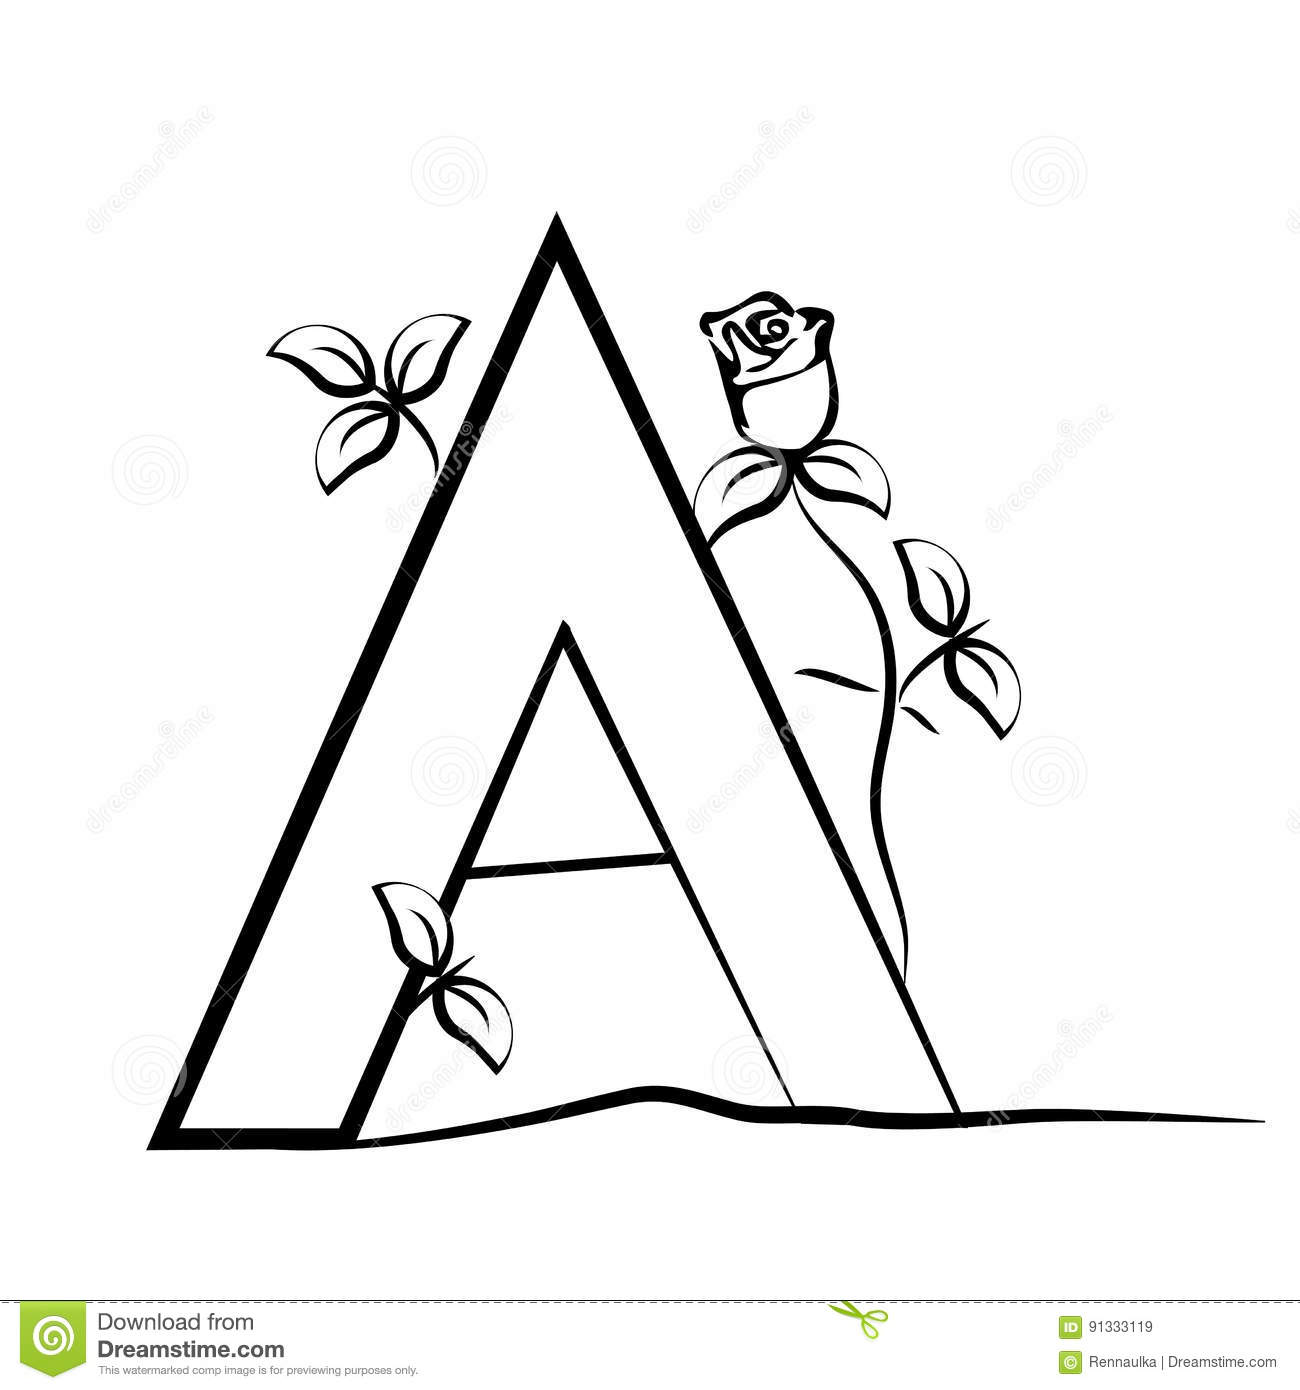 Capital Initial Letter A With Rose. Decorative Font With